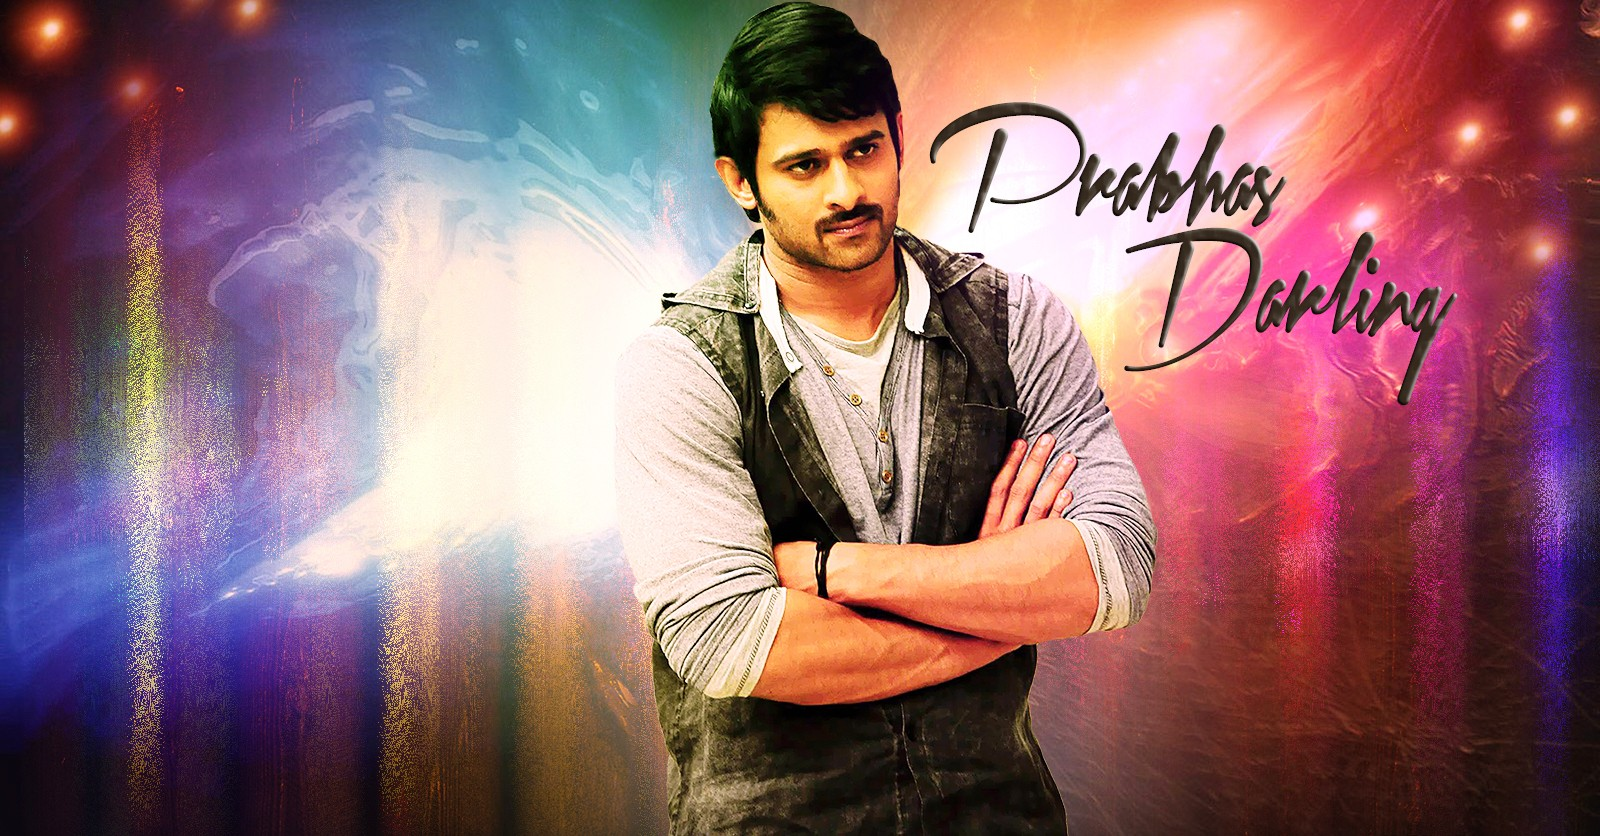 Prabhas Images, HD Photos, Biography & Latest News